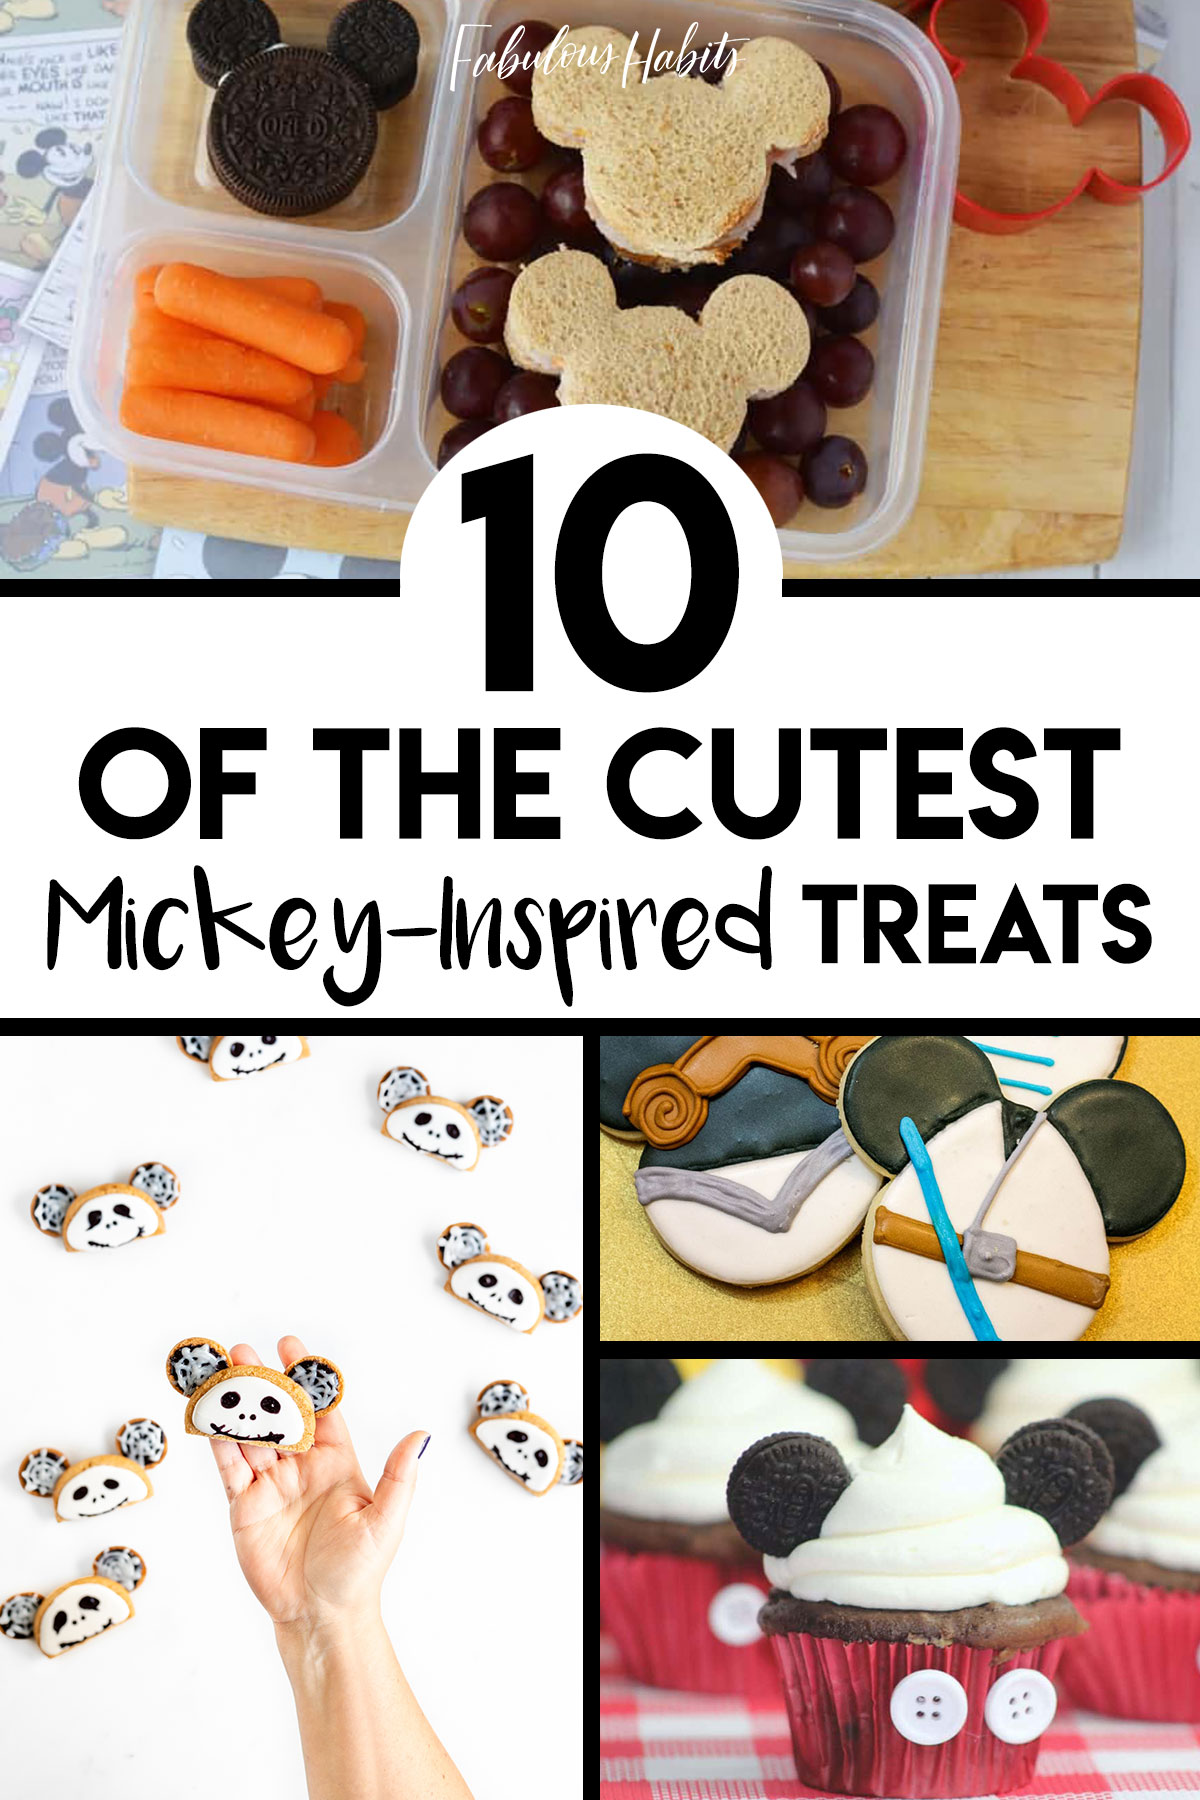 Who wants Mickey-inspired treats?! You do?! Well, you've come to the right place. We have a top 10 list of the cutest Mickey-shaped foods out there. #DisneyRecipes